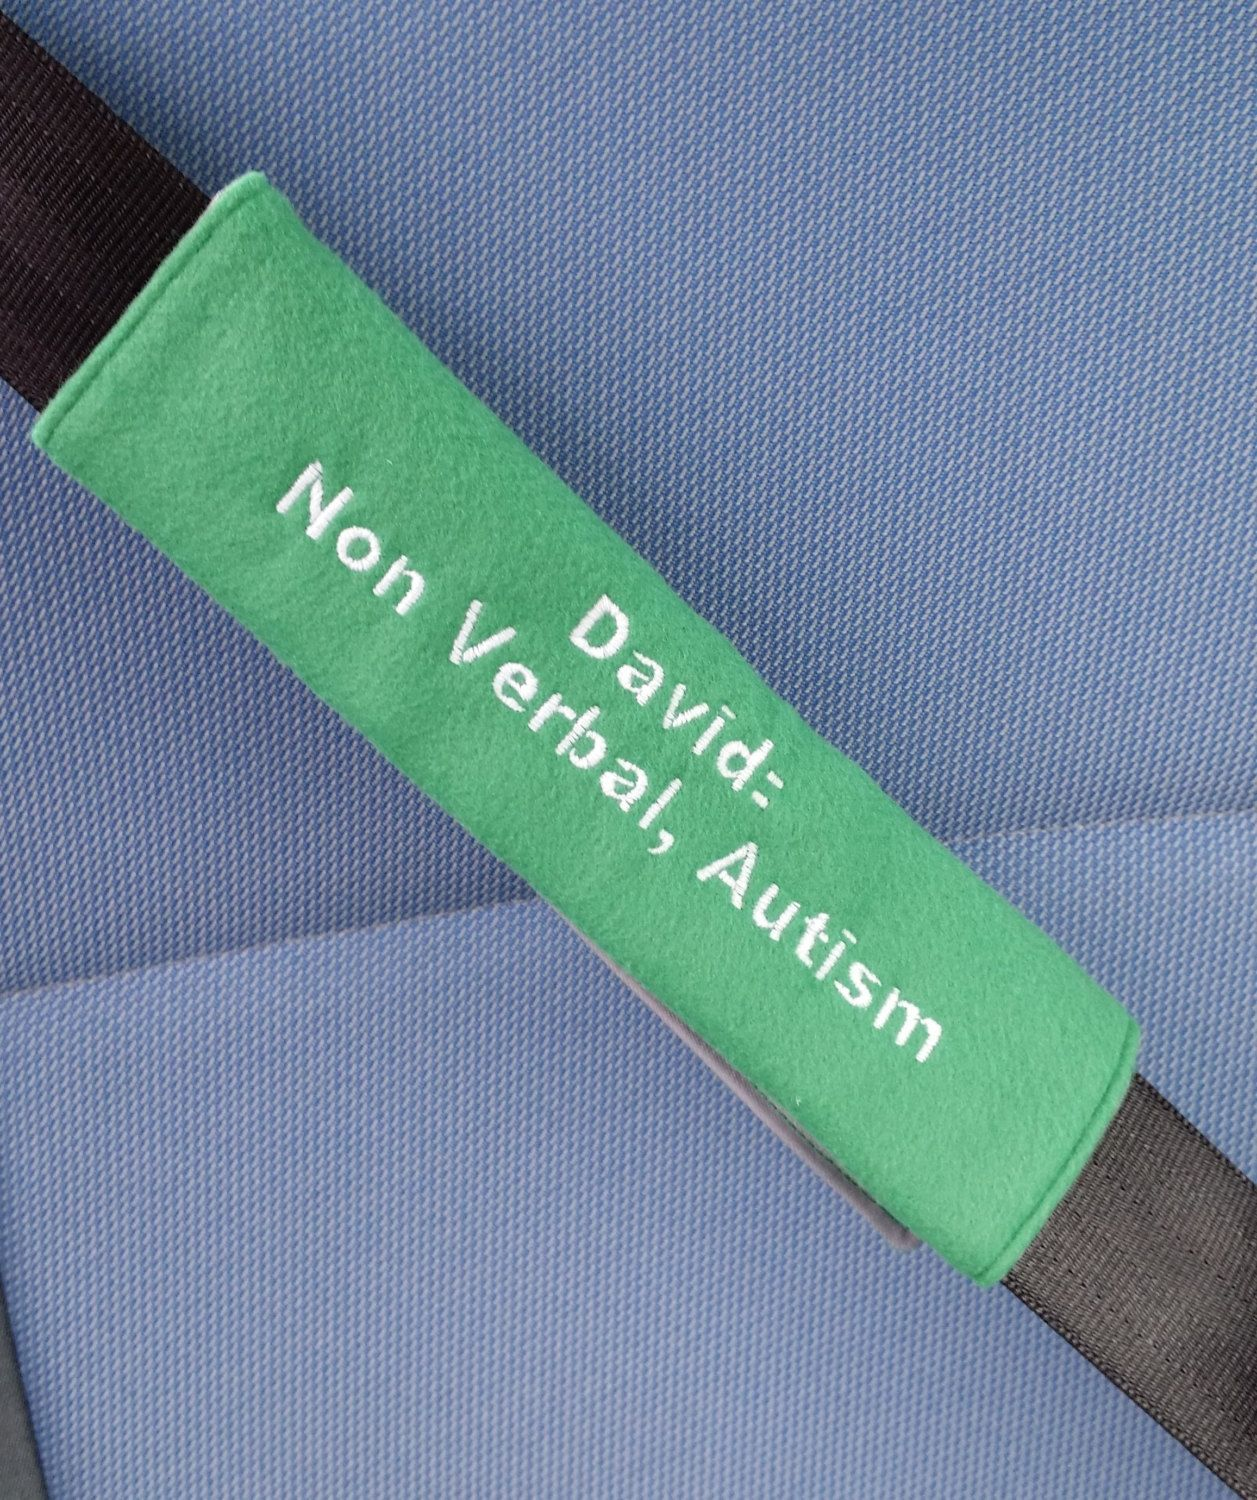 Child Seat Belt Cover With Medical Information In Case Of